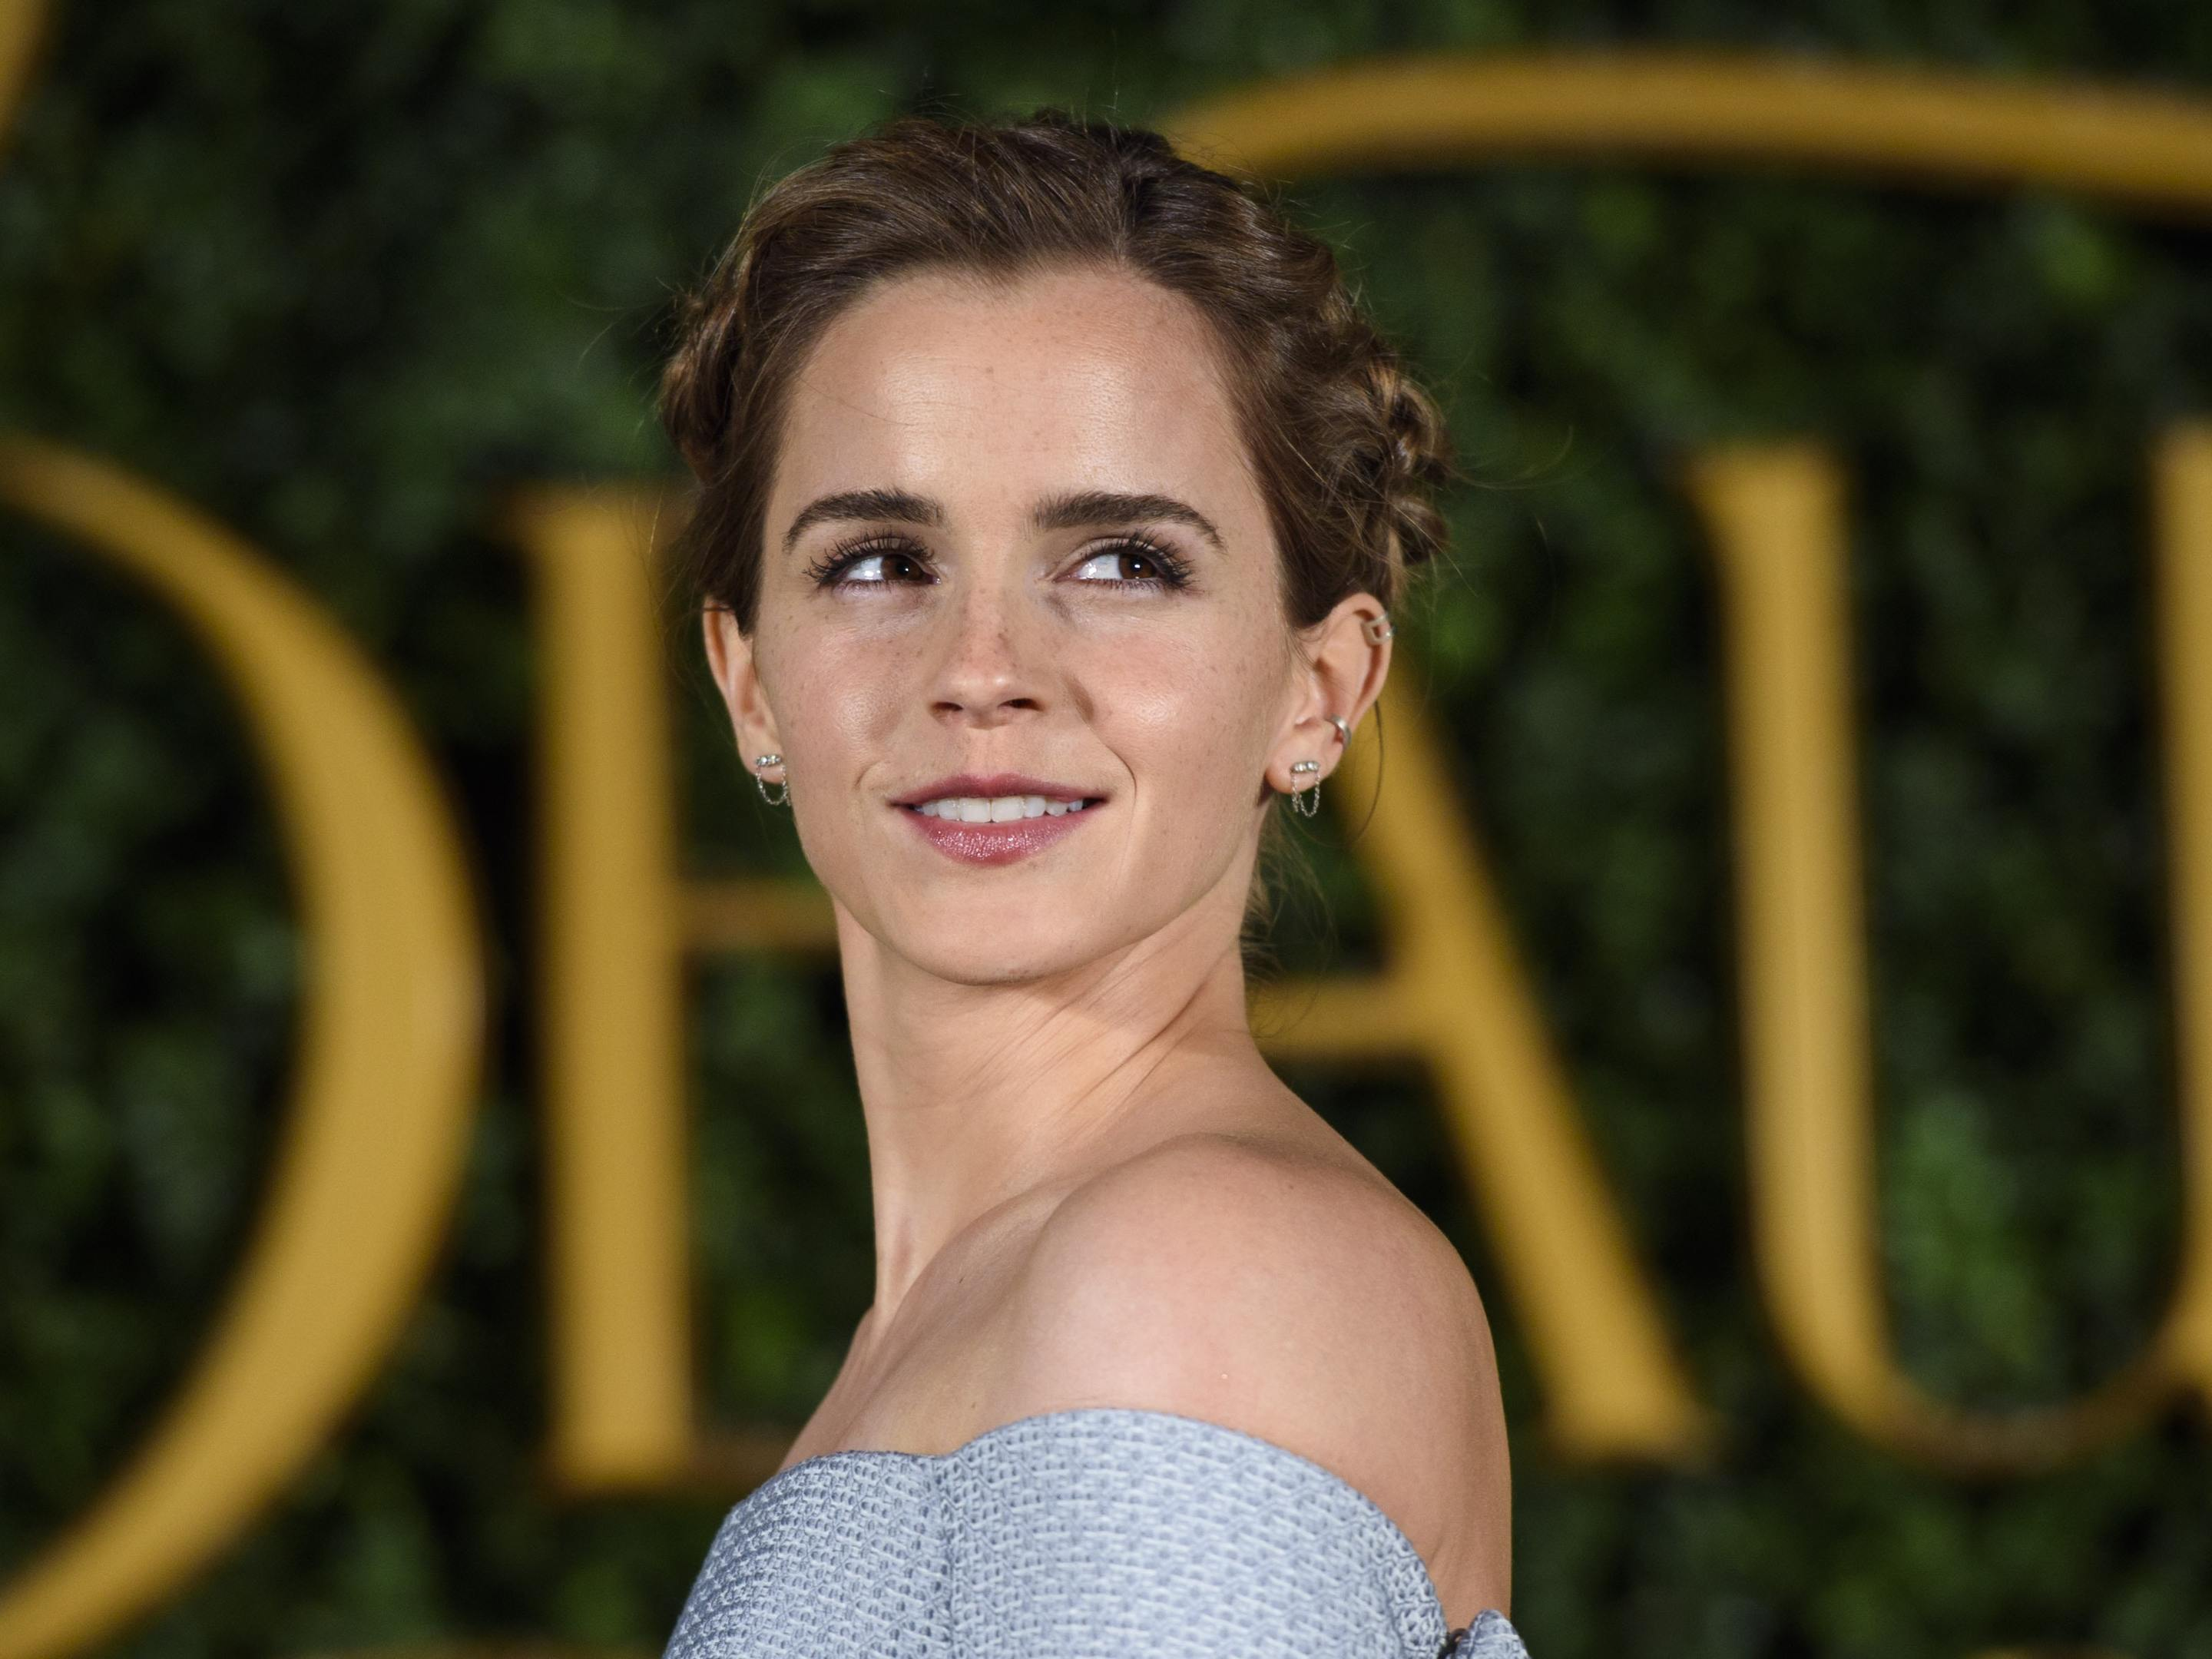 Here's why Emma Watson donated 1 million to the UK Justice and Equality Fund Here's why Emma Watson donated 1 million to the UK Justice and Equality Fund new pics